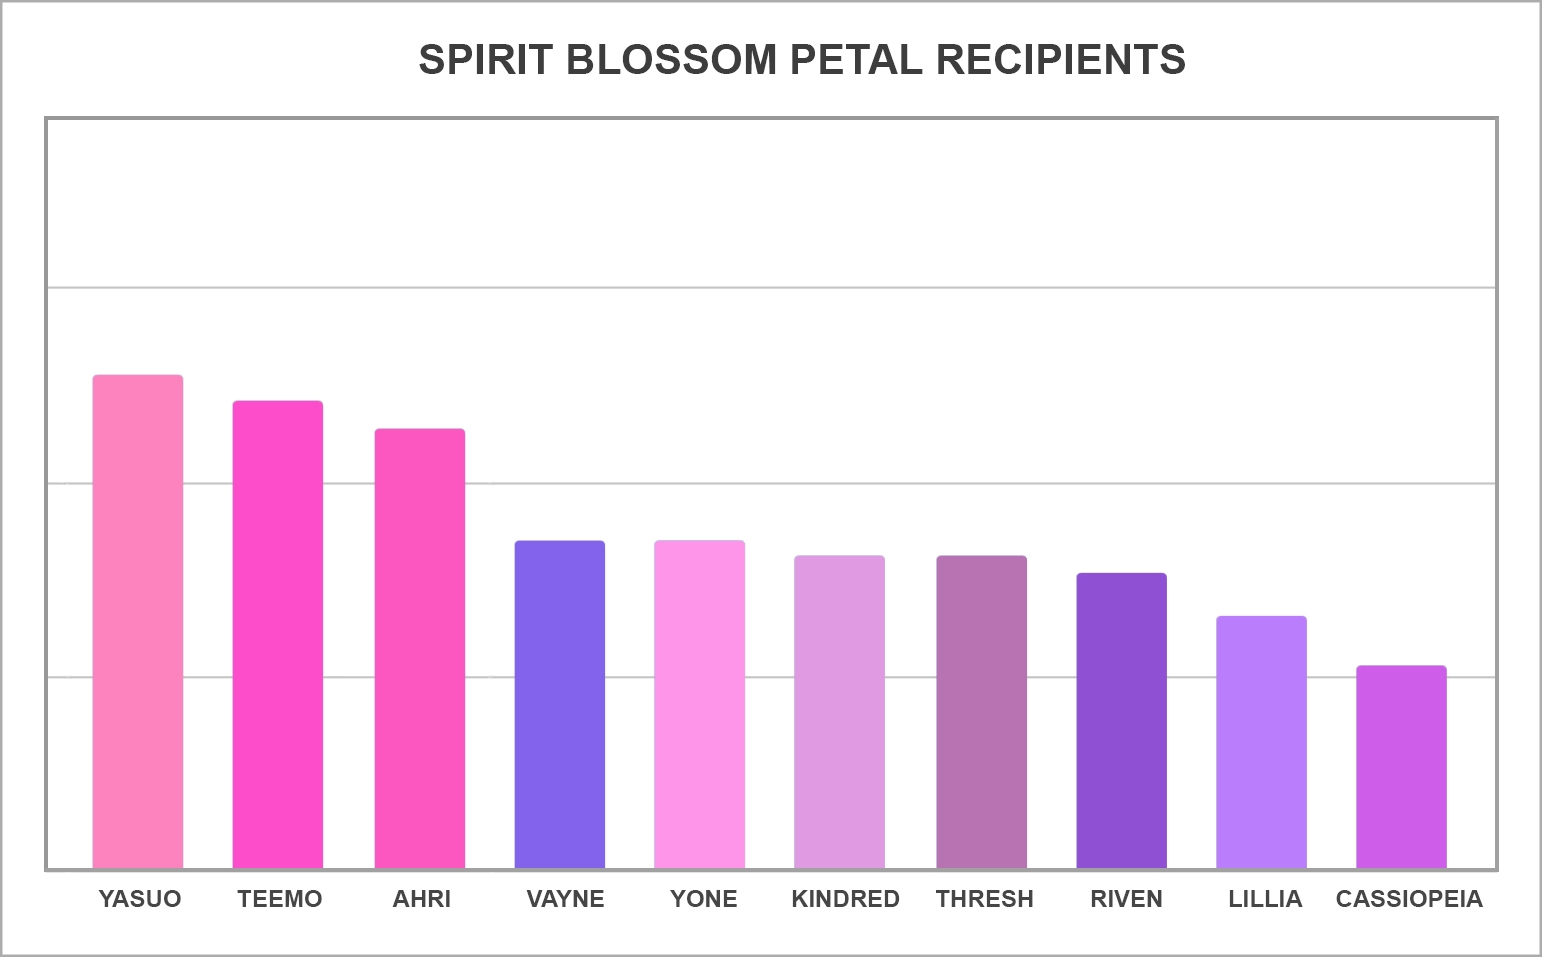 Spirit_Blossom_Petal_Recipients_Graph.jpg